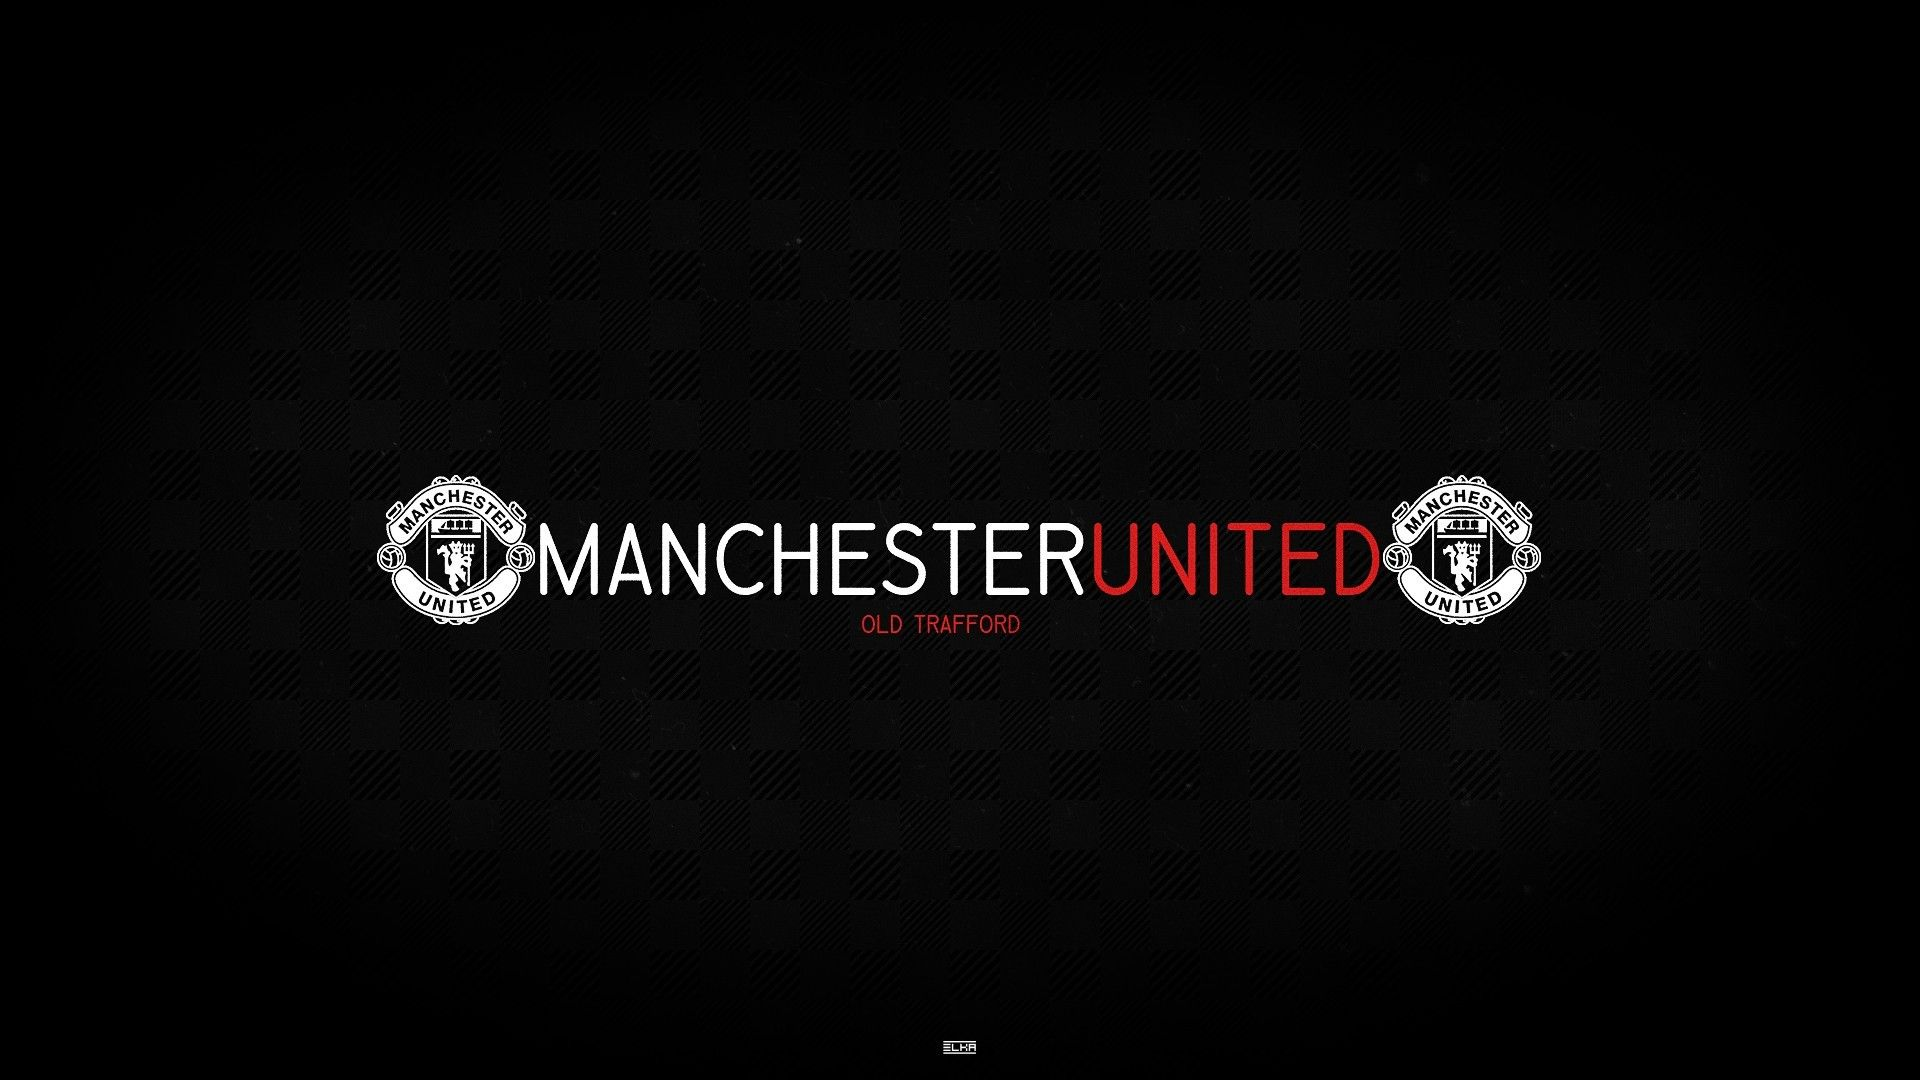 71 Man Utd Wallpapers On Wallpaperplay In 2020 Manchester United Wallpaper Manchester United Logo Manchester United